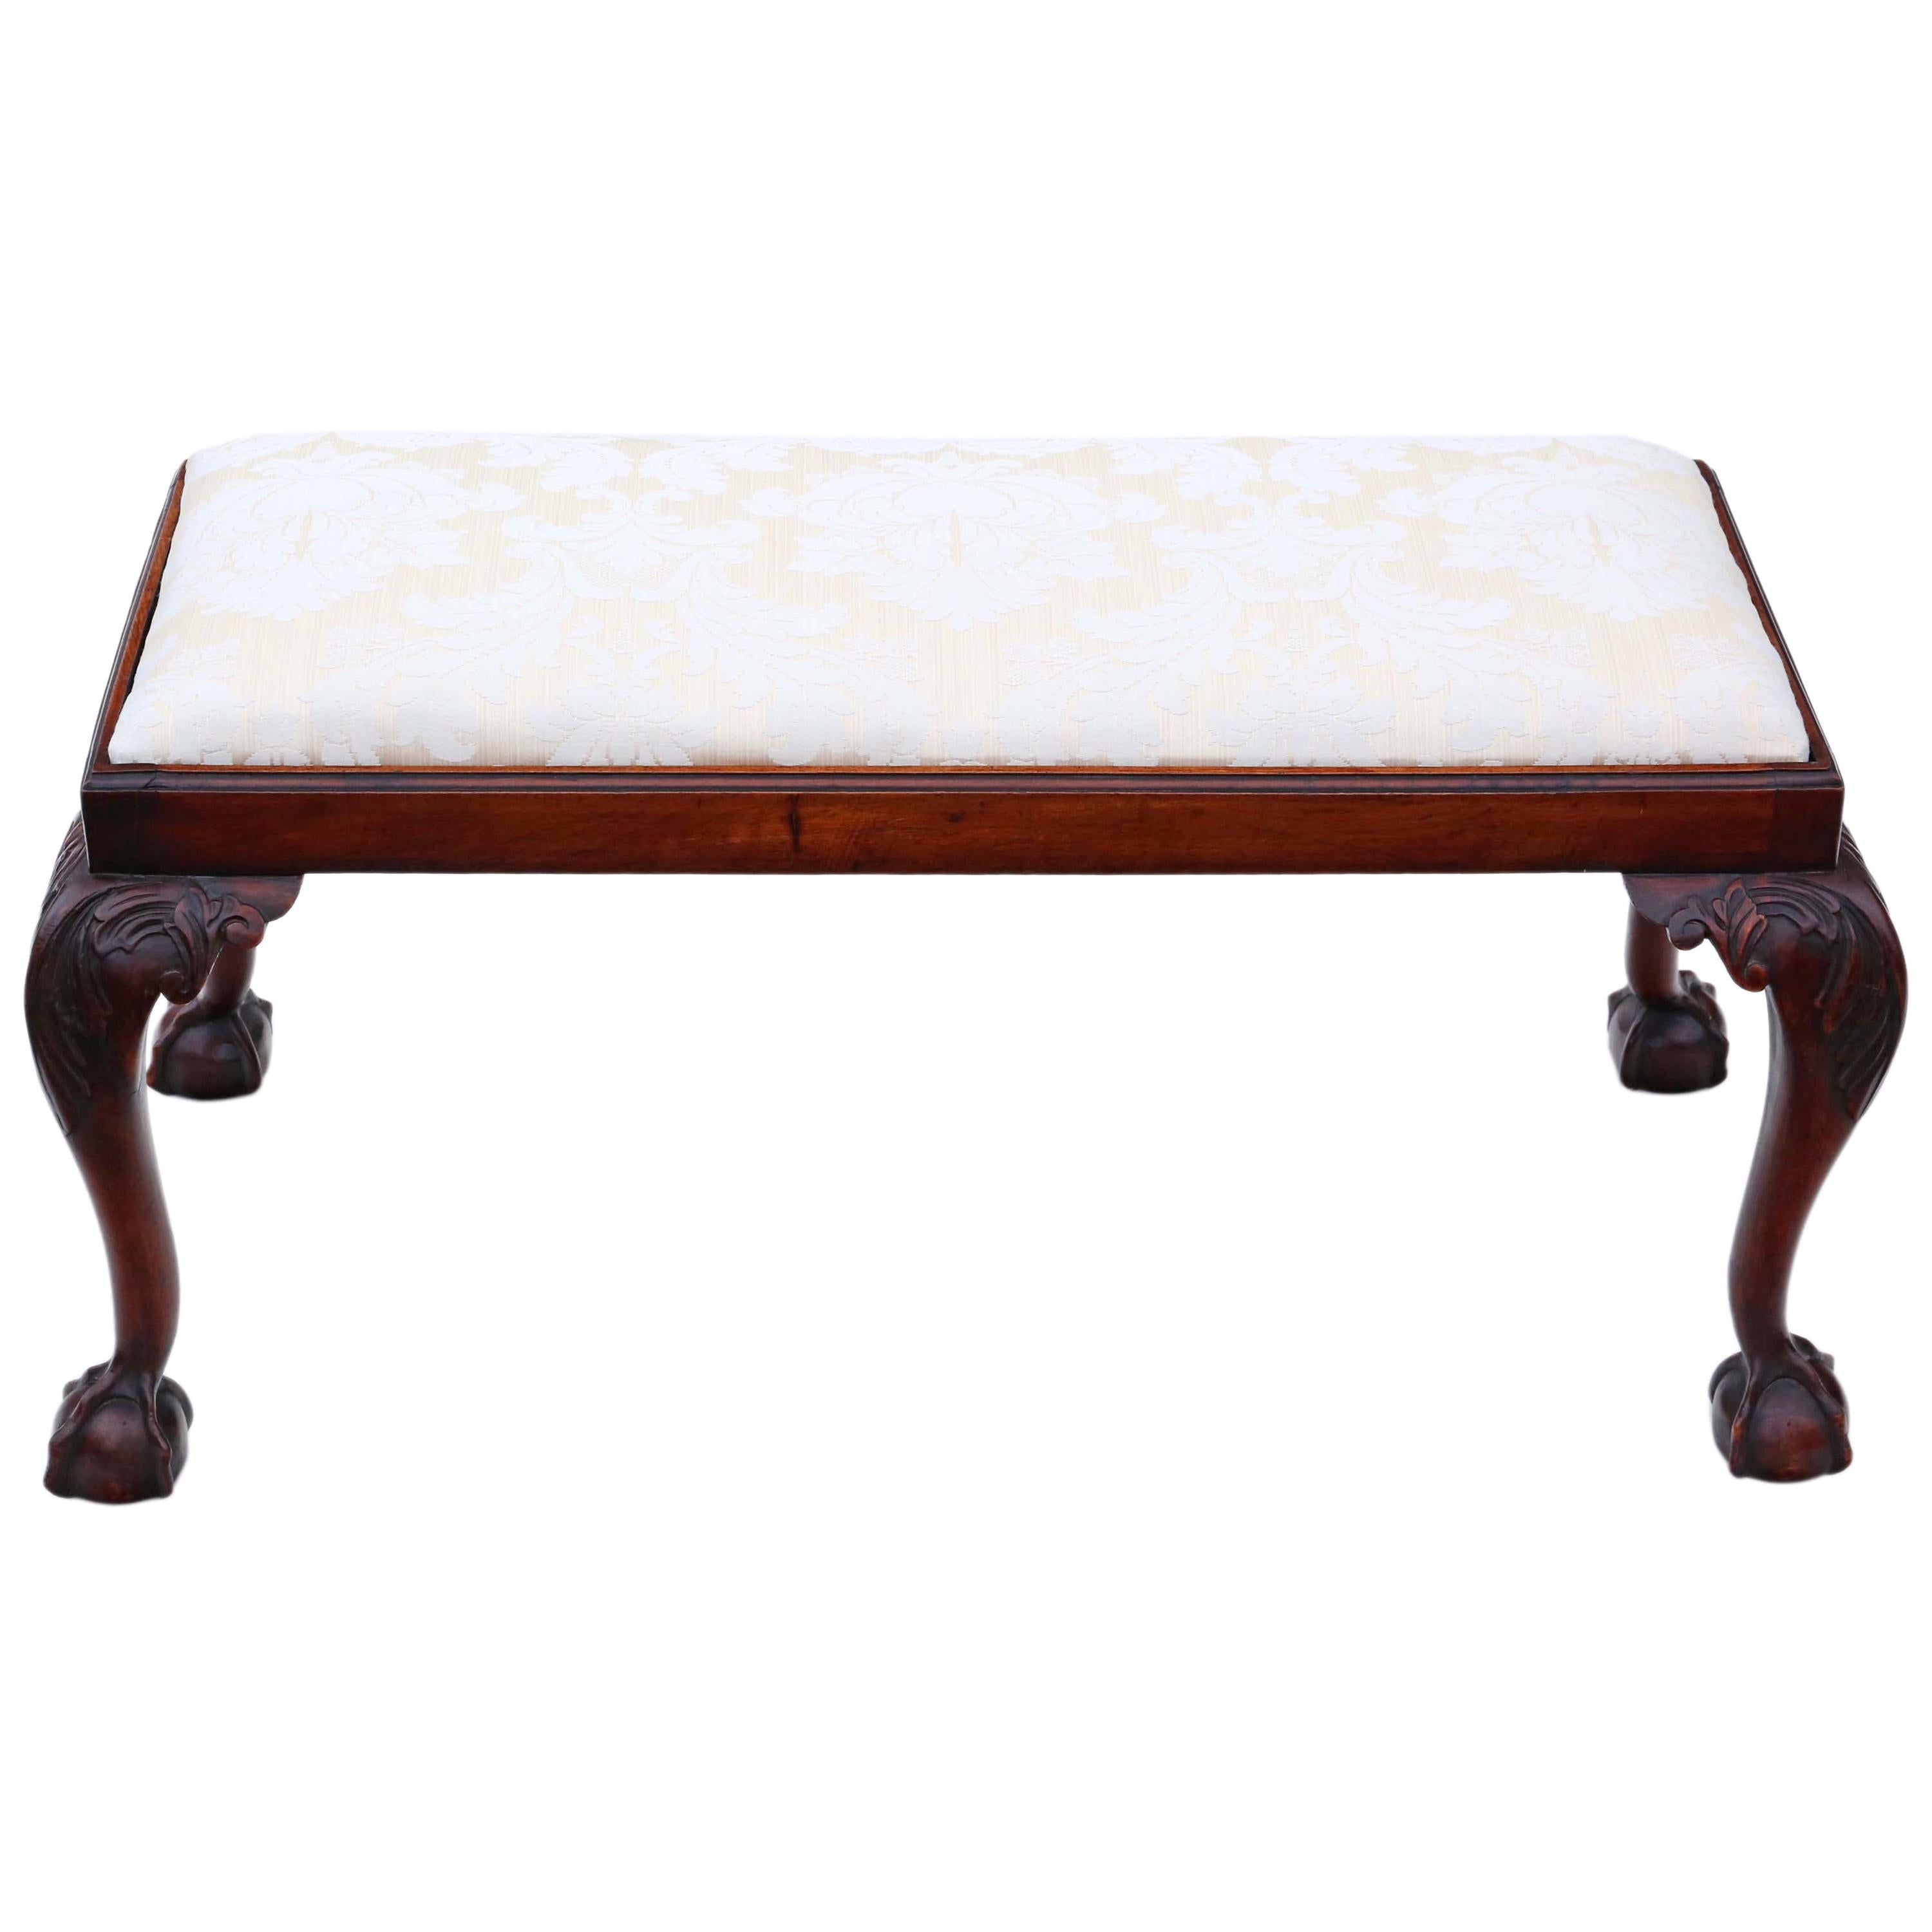 Antique 19th Century Carved Mahogany Double Stool or Window Seat